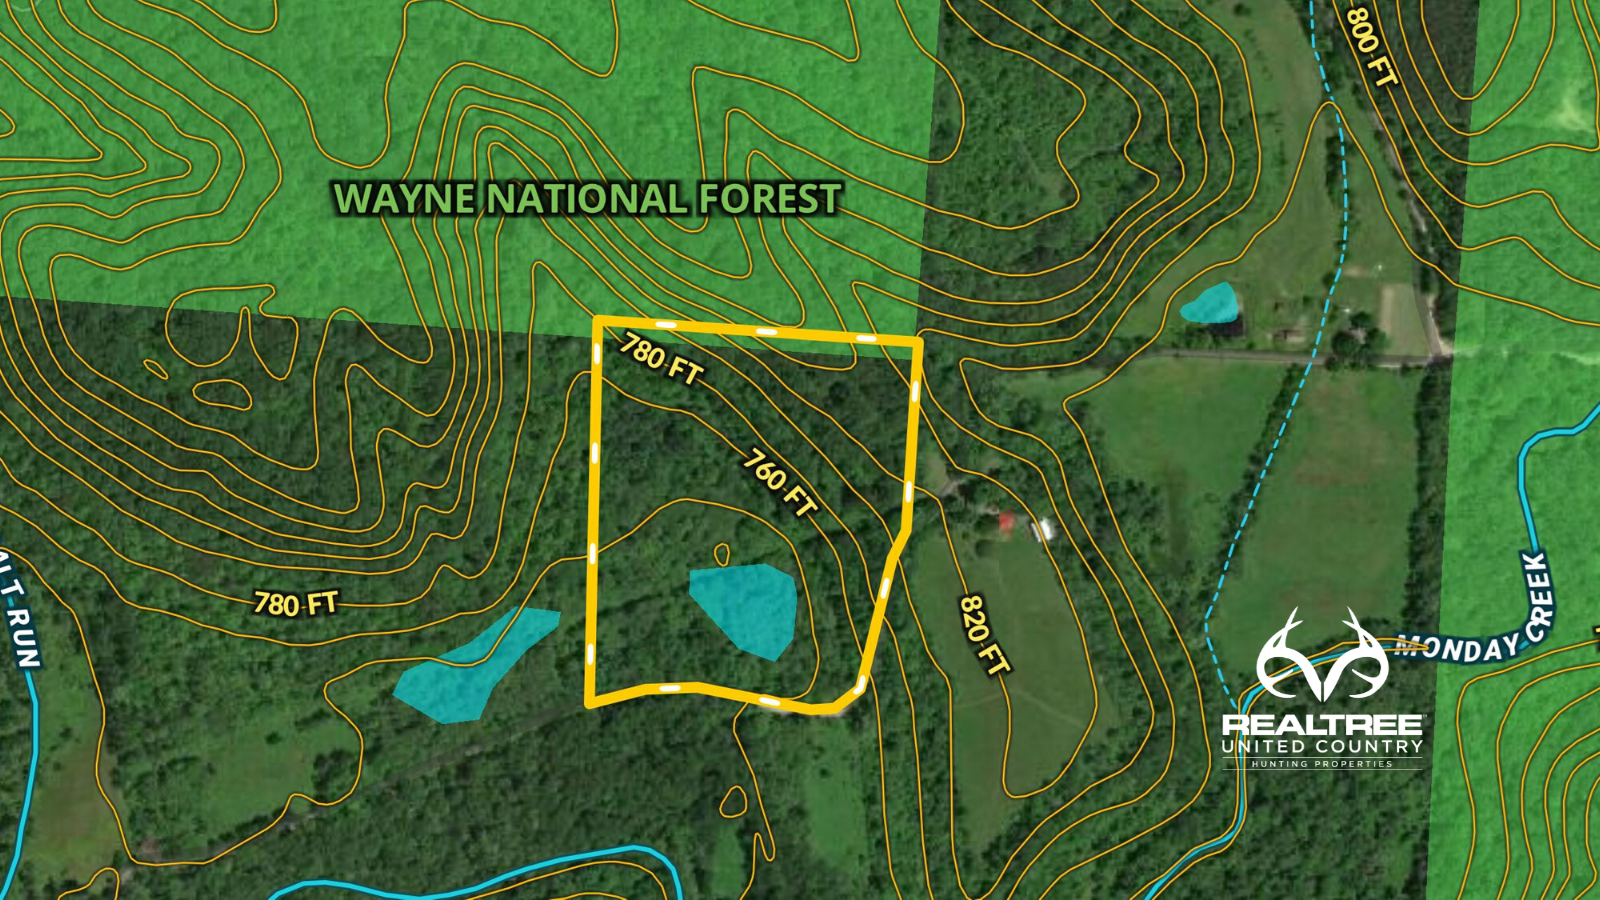 Ohio Hunting Land on Wayne National Forest